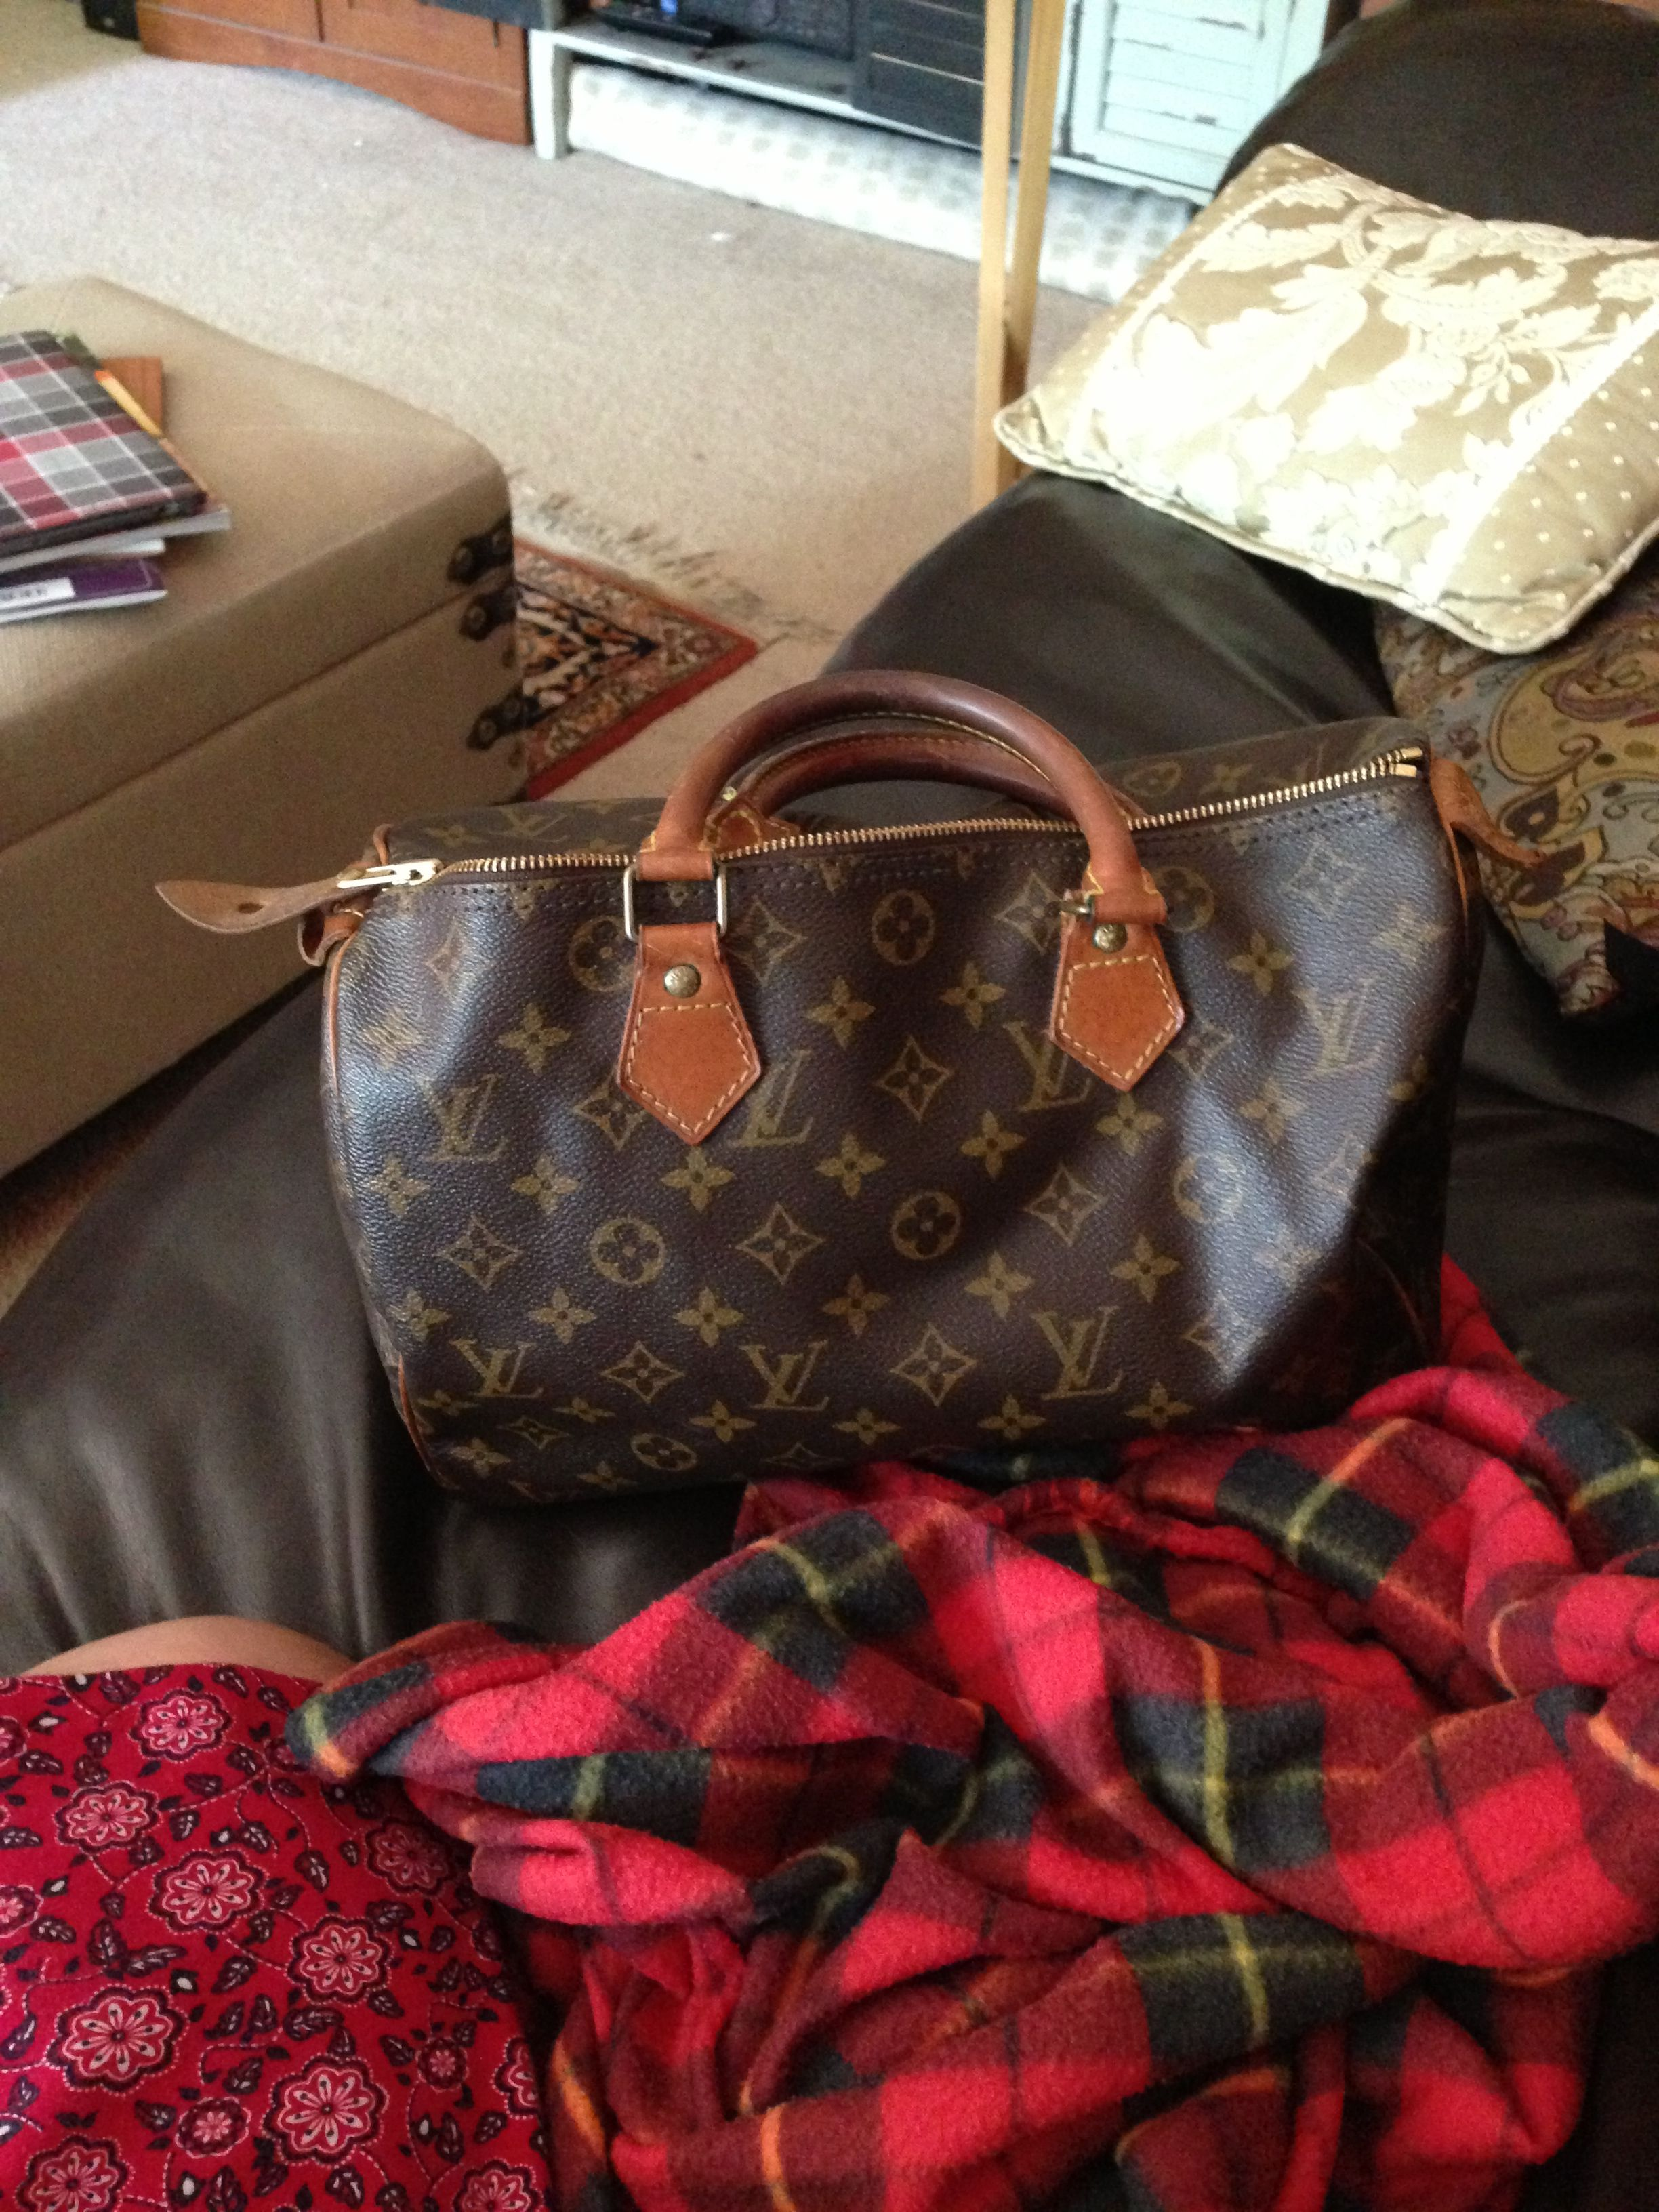 d5e8075d921 This pre-loved Louis Vuitton Classic Speedy 30 now belongs to me ...